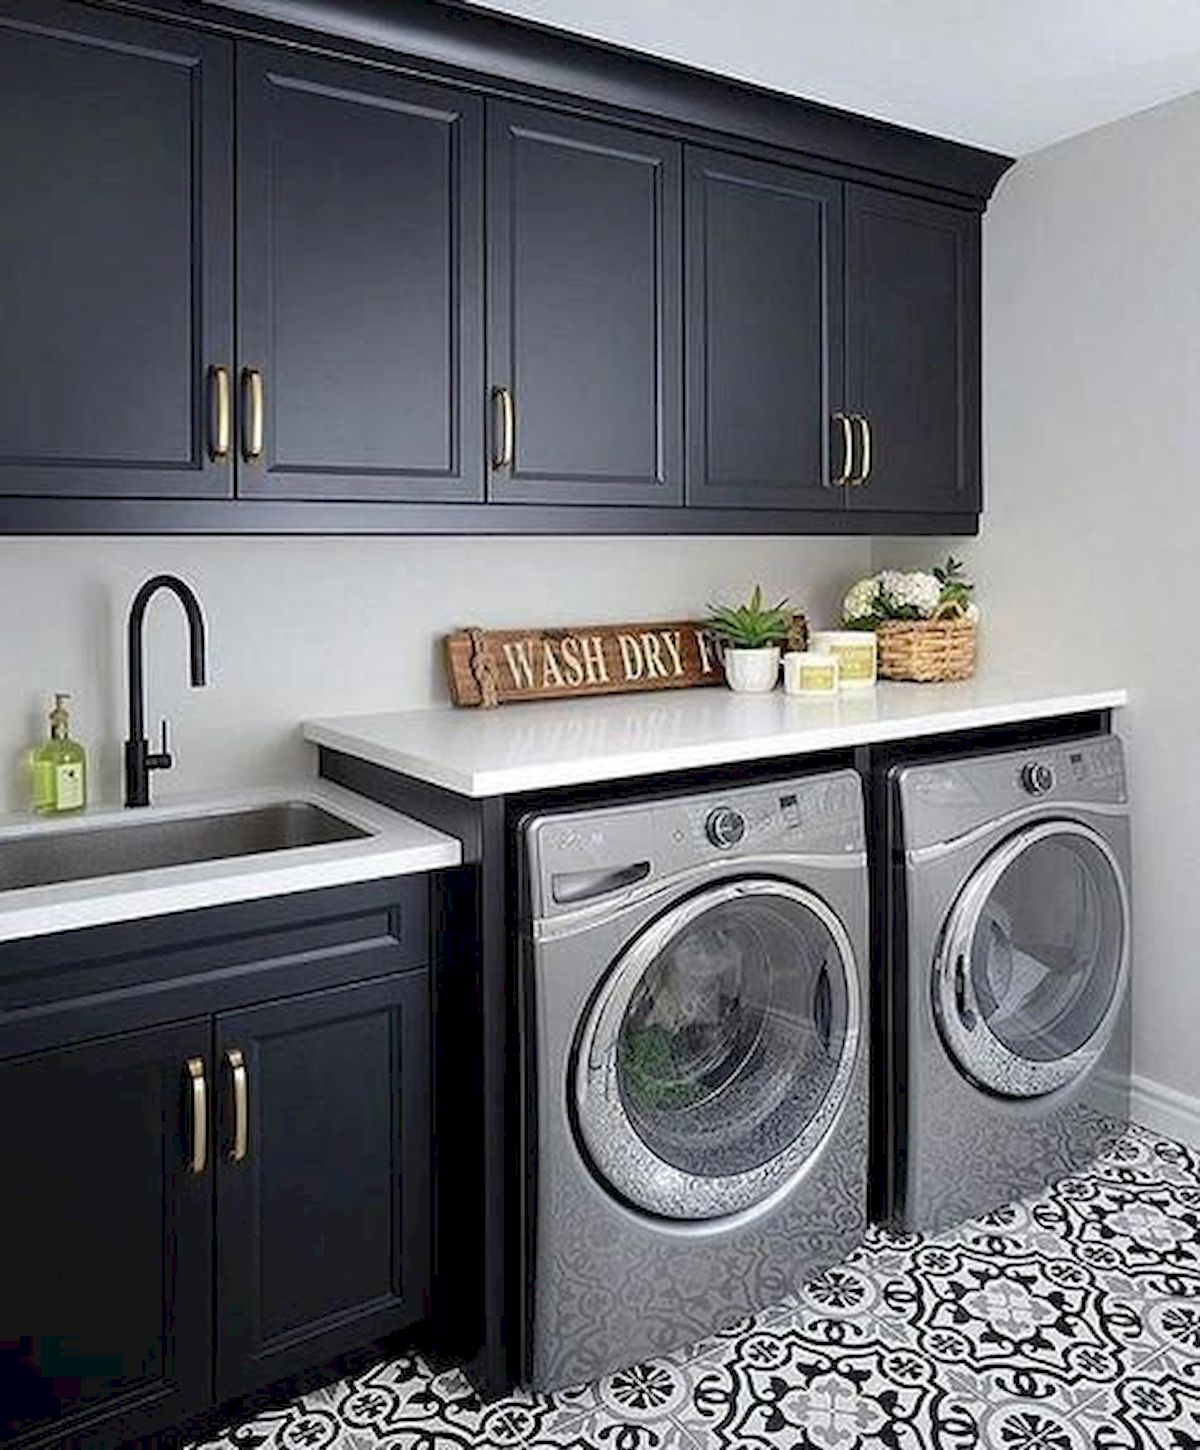 57 Fantastic Laundry Room Design Ideas And Decorations 48